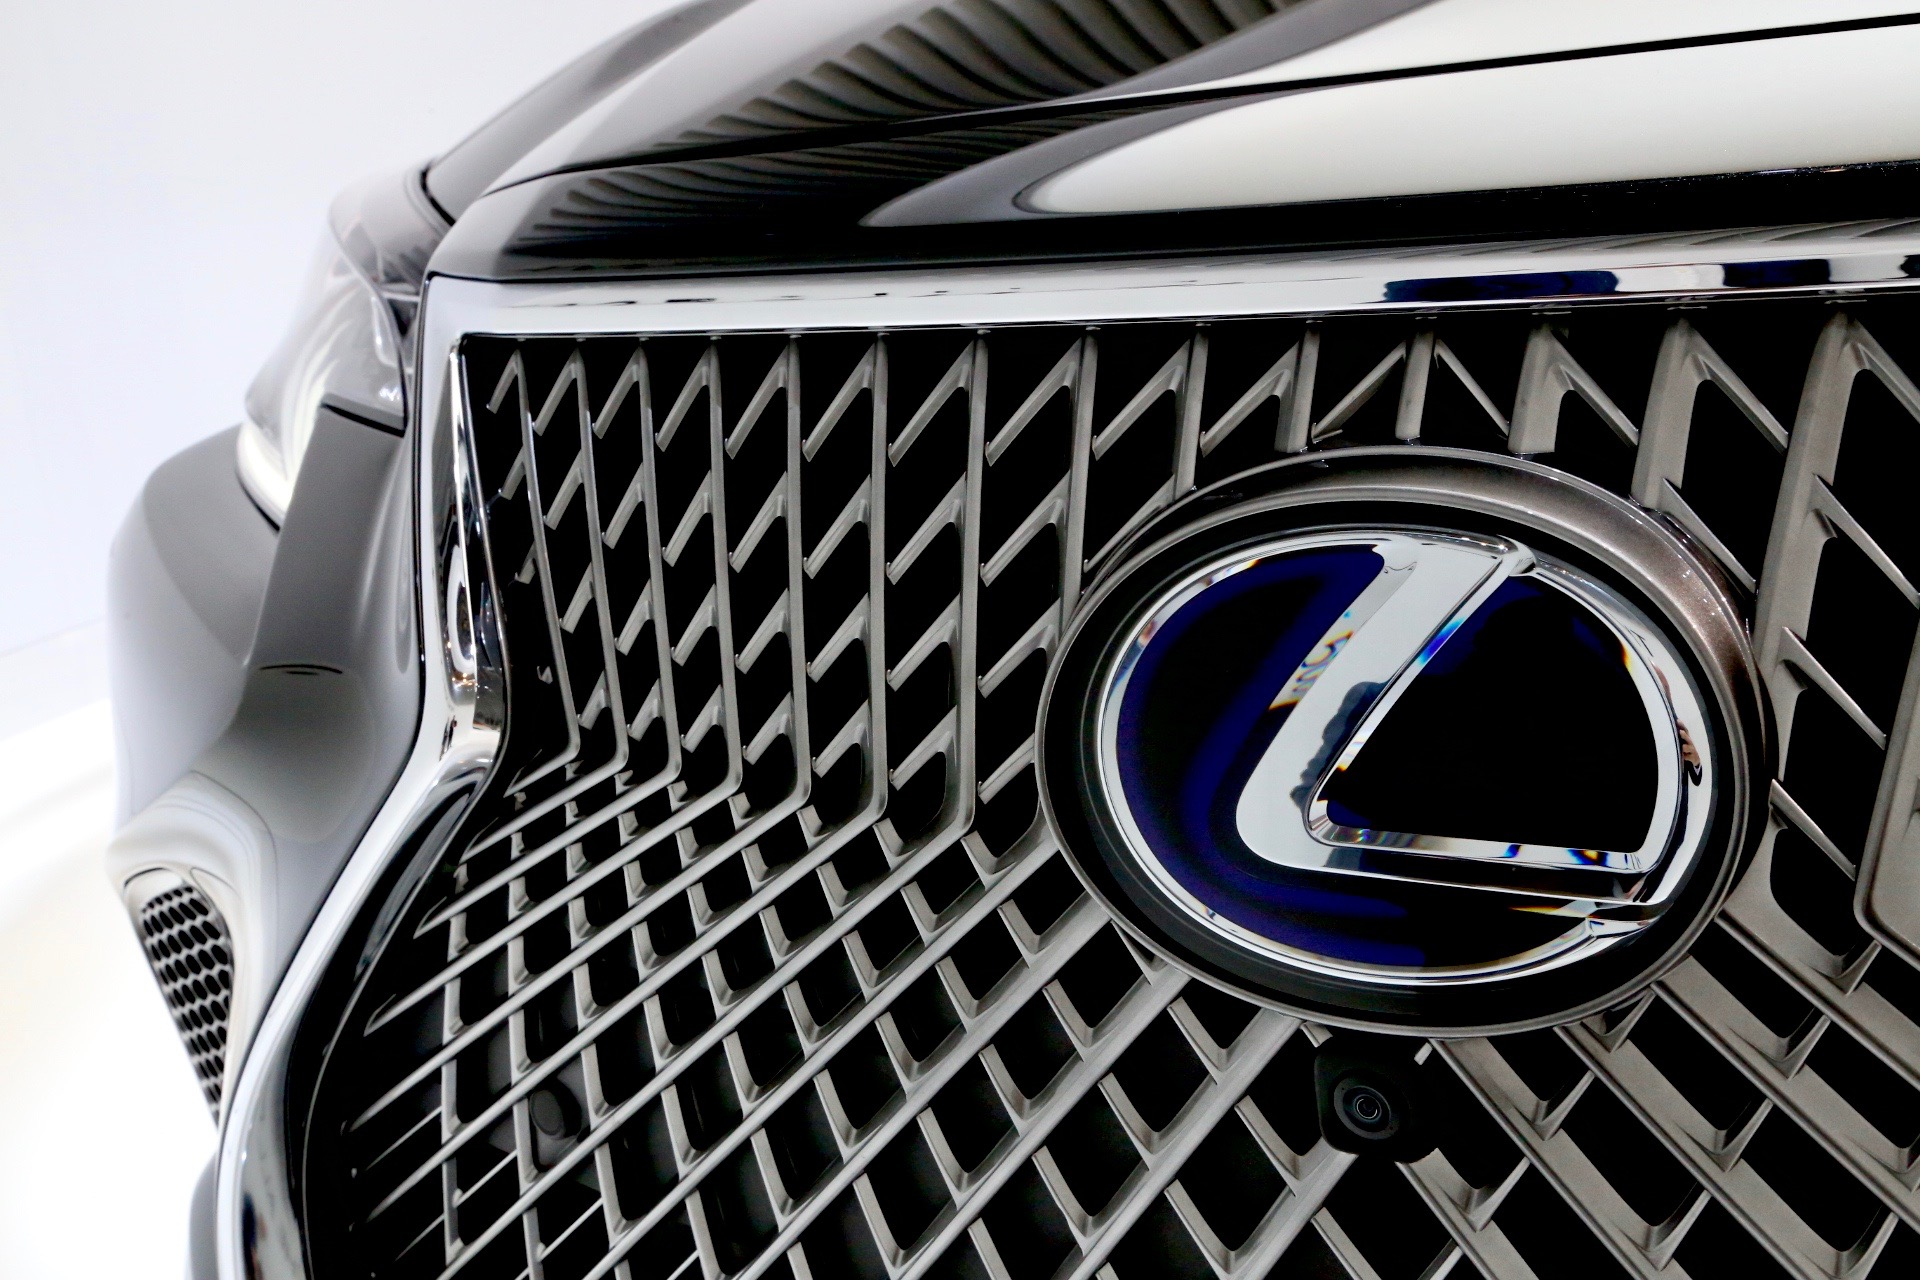 Buick Lexus top service satisfaction study while Fiat Land